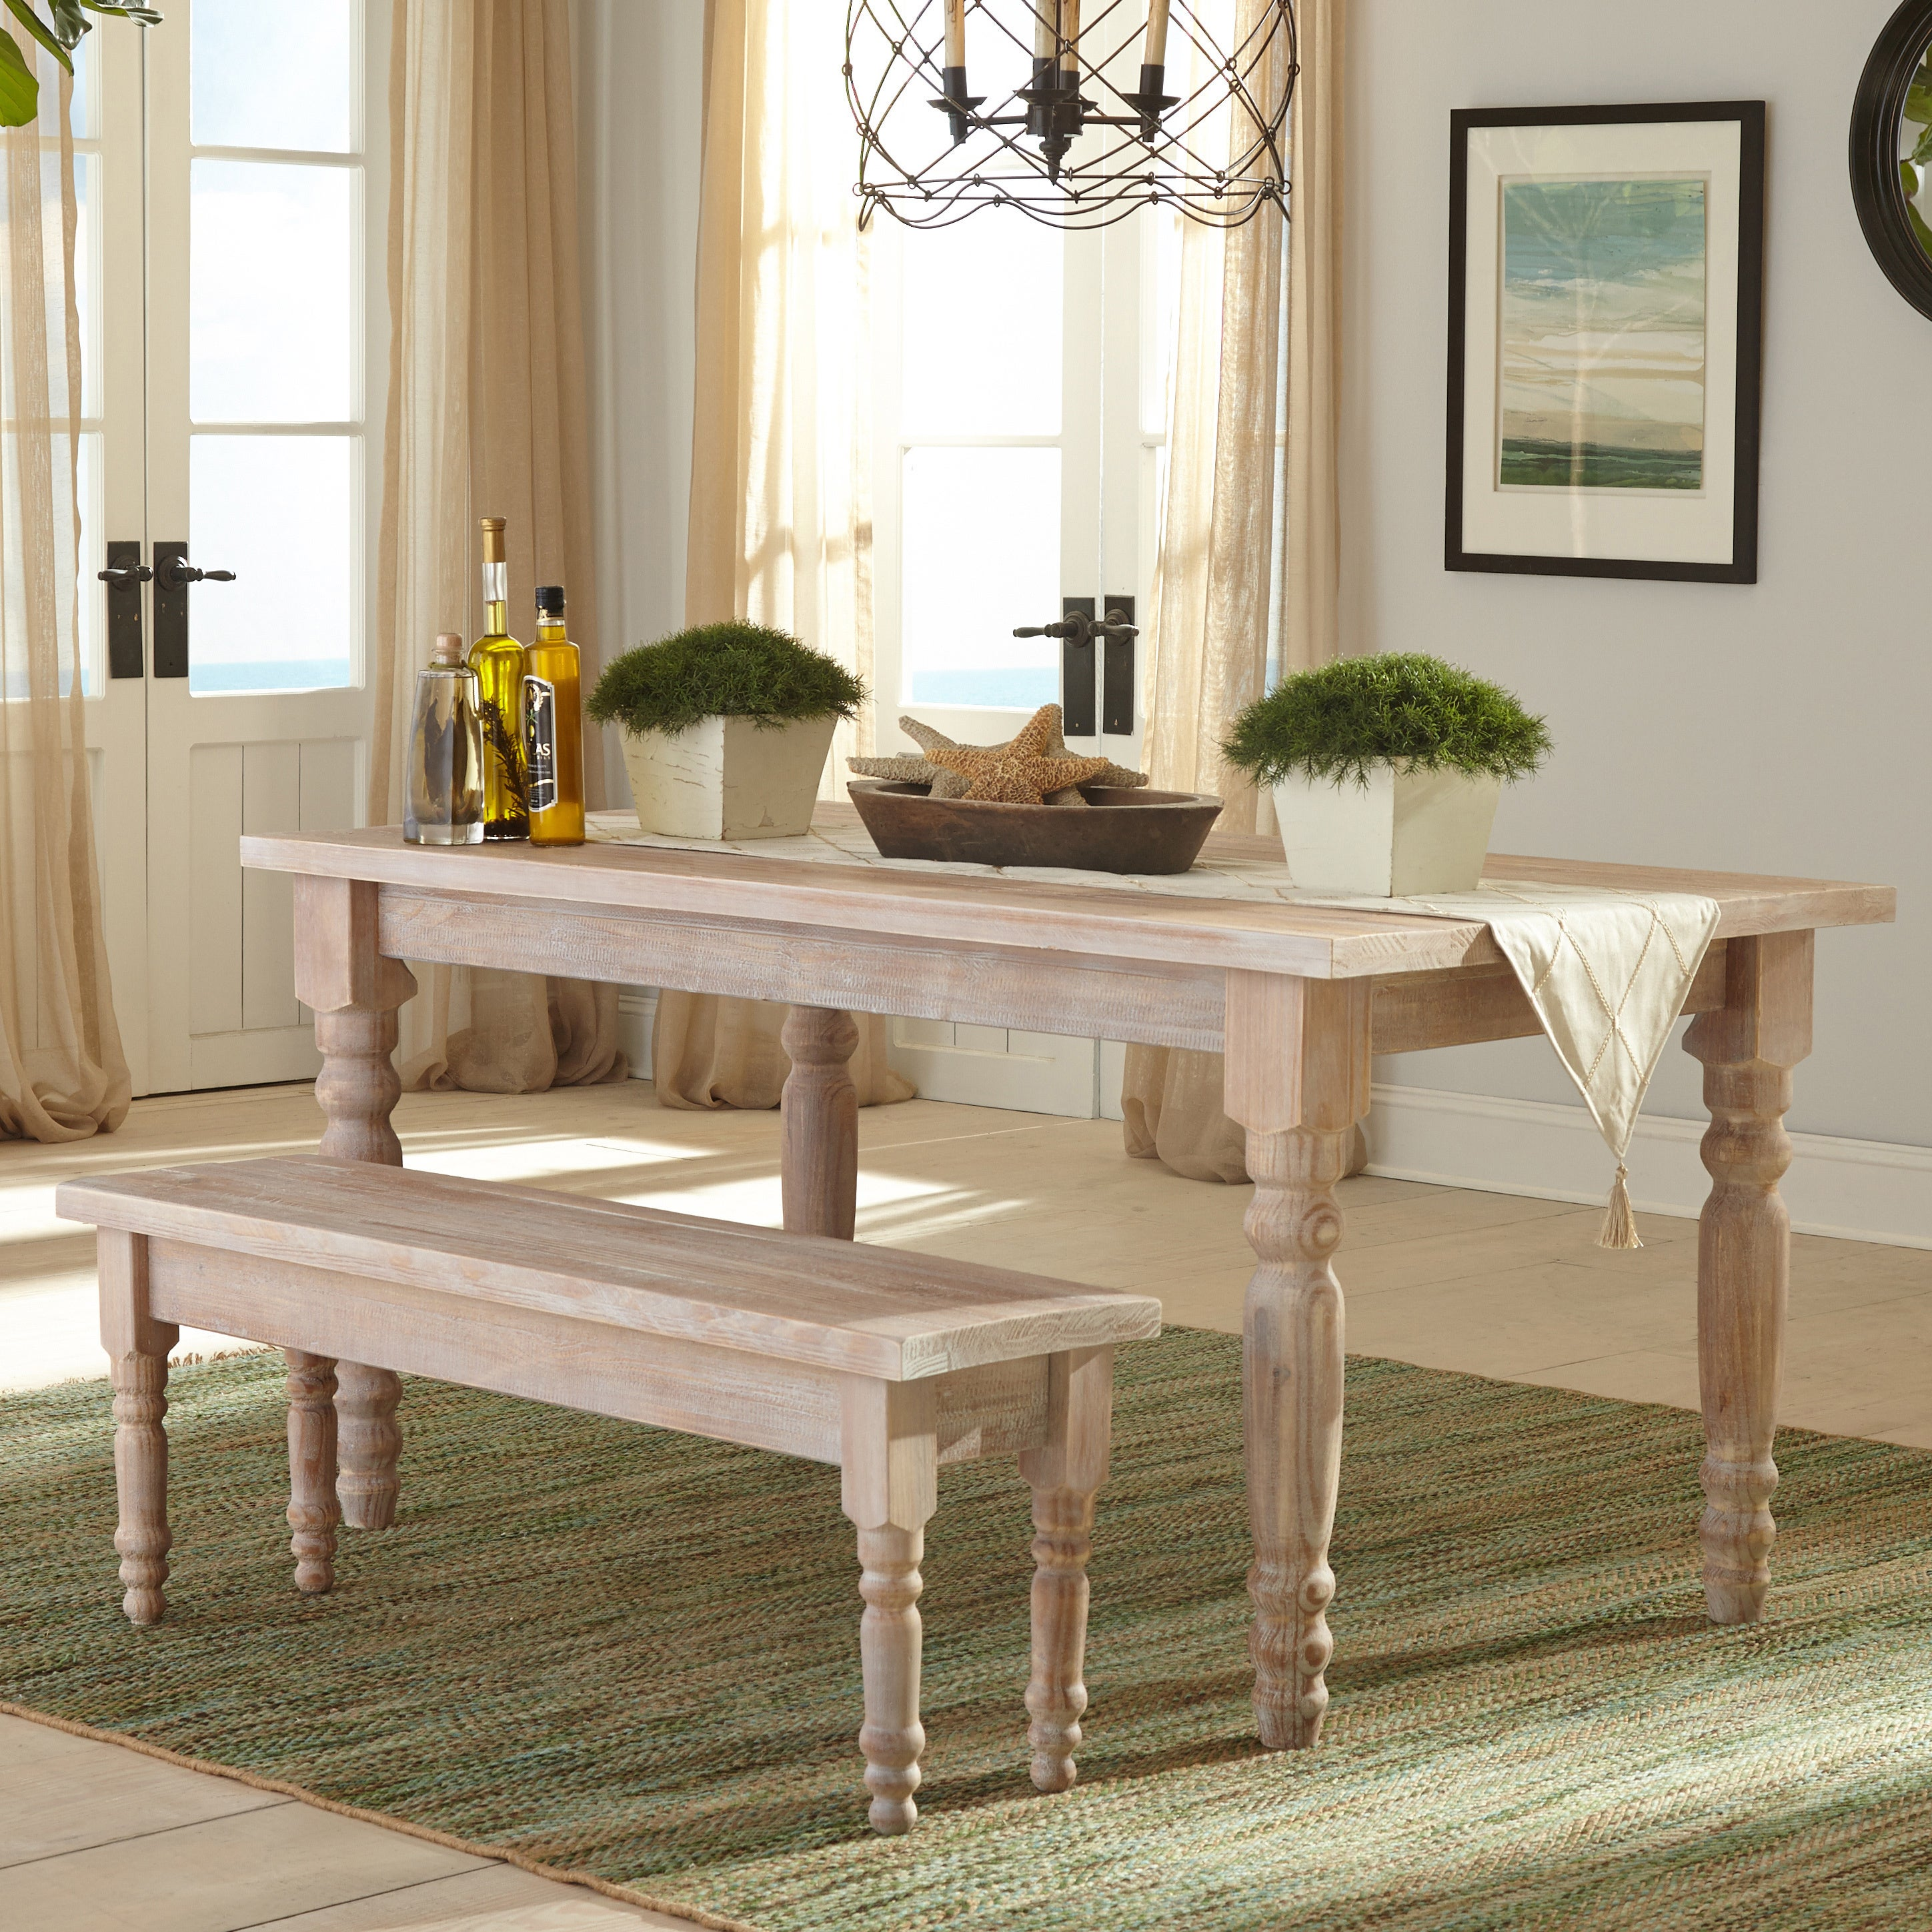 Grain Wood Furniture Valerie Solid Wood Dining Bench   Free Shipping Today    Overstock   17975923